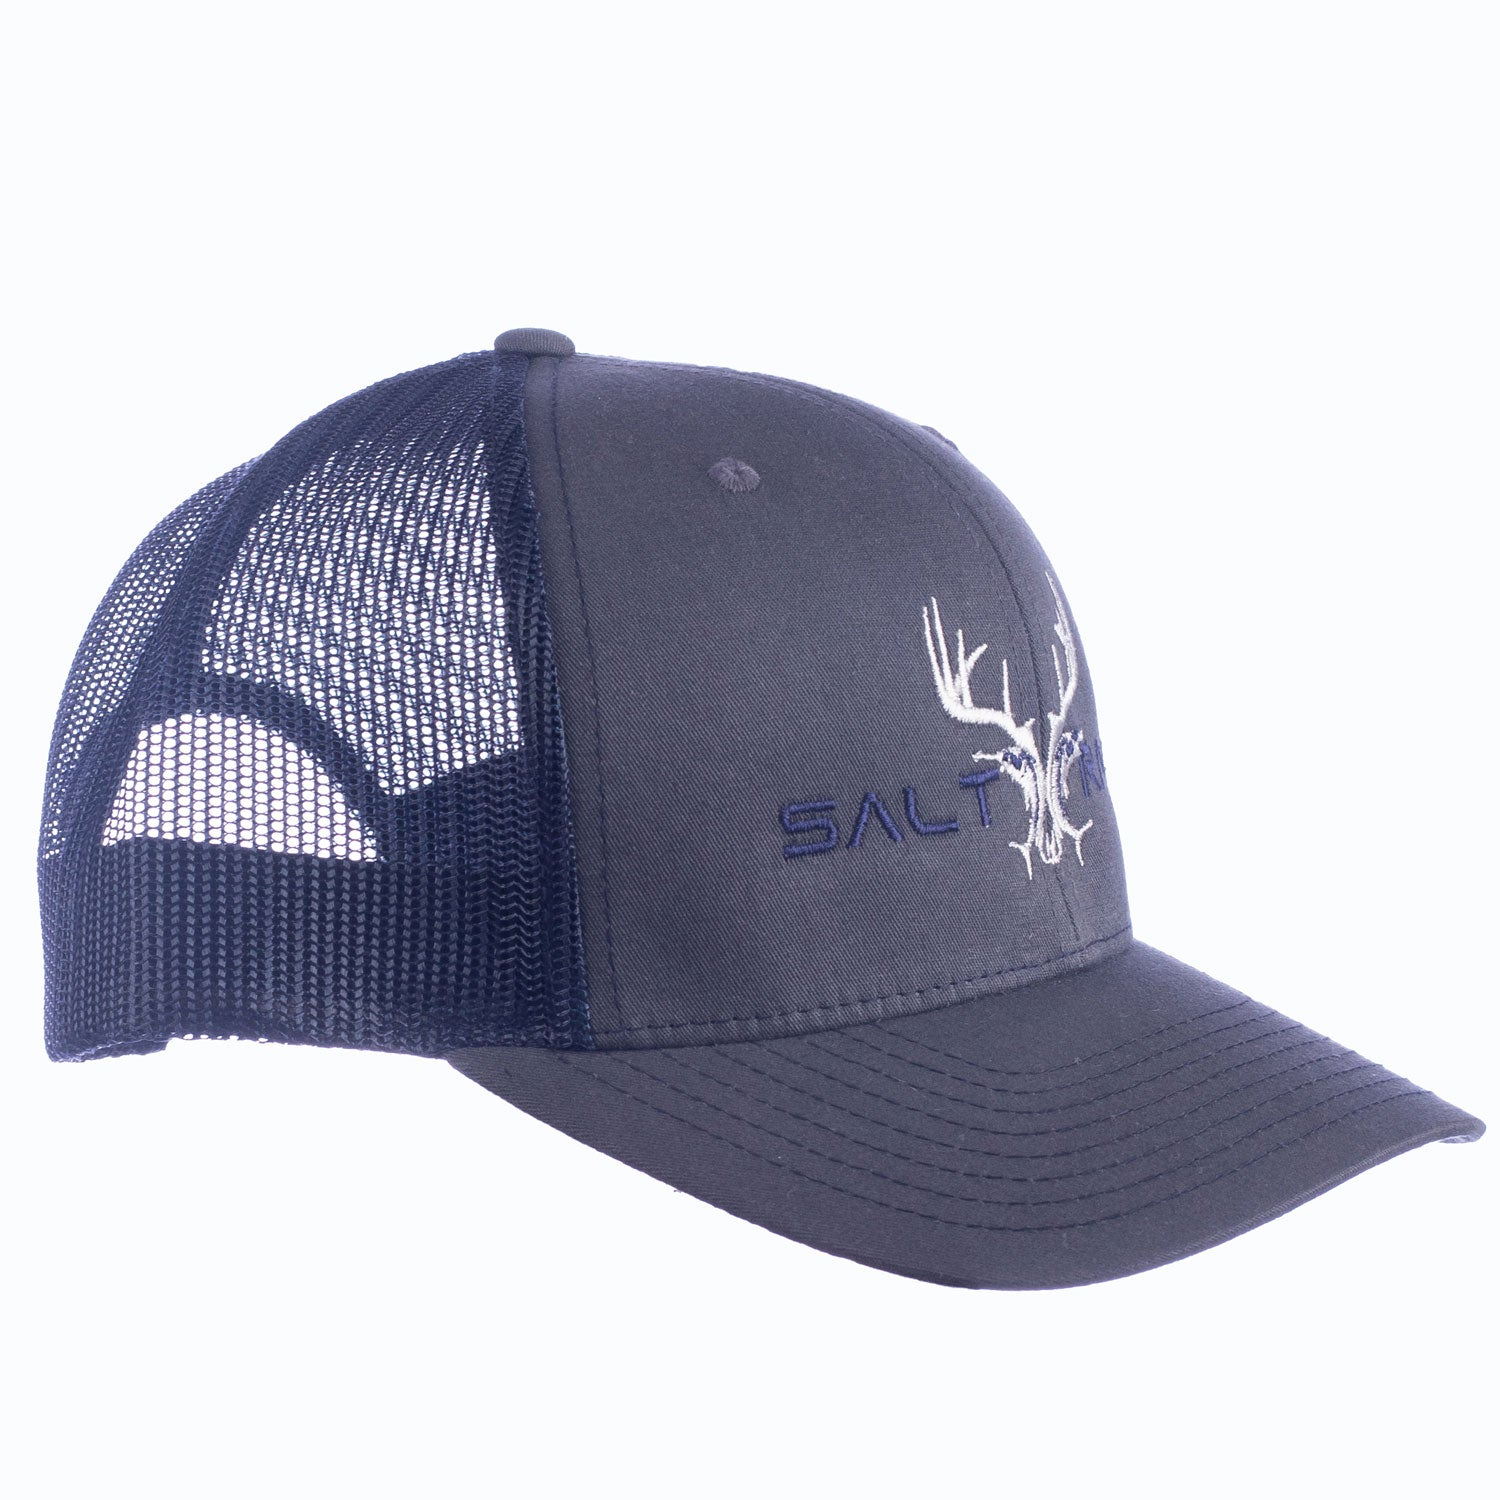 Gray/Navy Cap